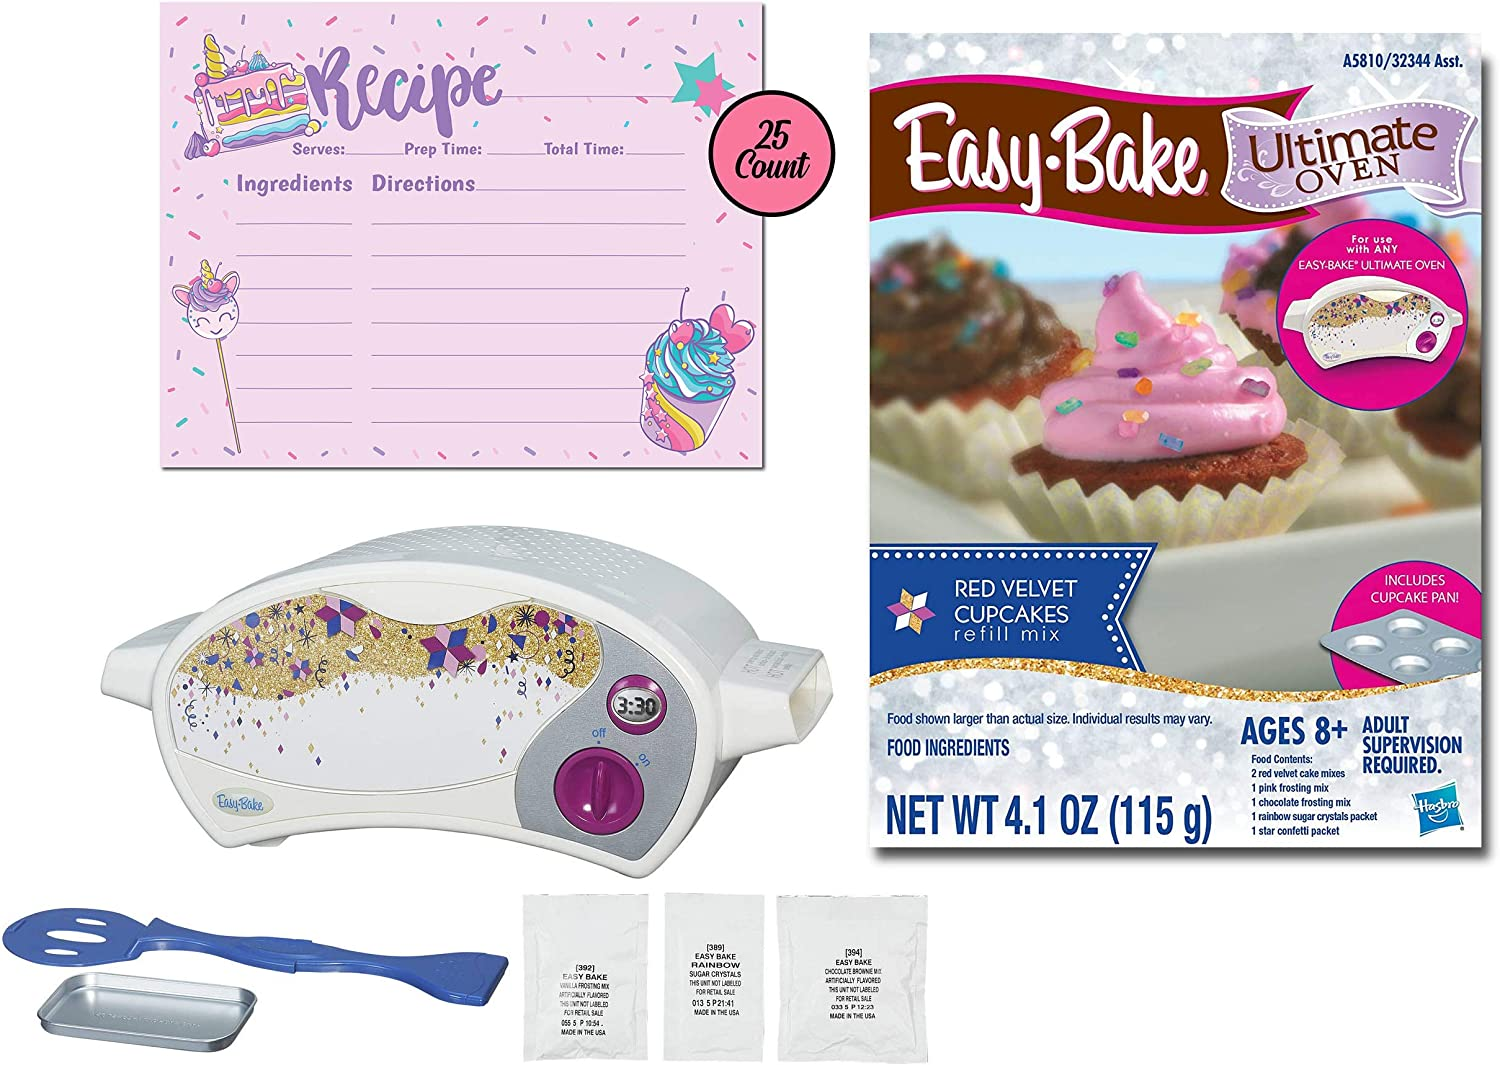 Sister Novelties Easy Bake Oven with Easy Bake Oven Mixes and Recipe Cards, Mini Oven, Easy Bake Oven for Kids, Kids Oven, Easy Bake Oven Mixes for Kids, Easy Bake Oven Food (Red Velvet Cupcakes)